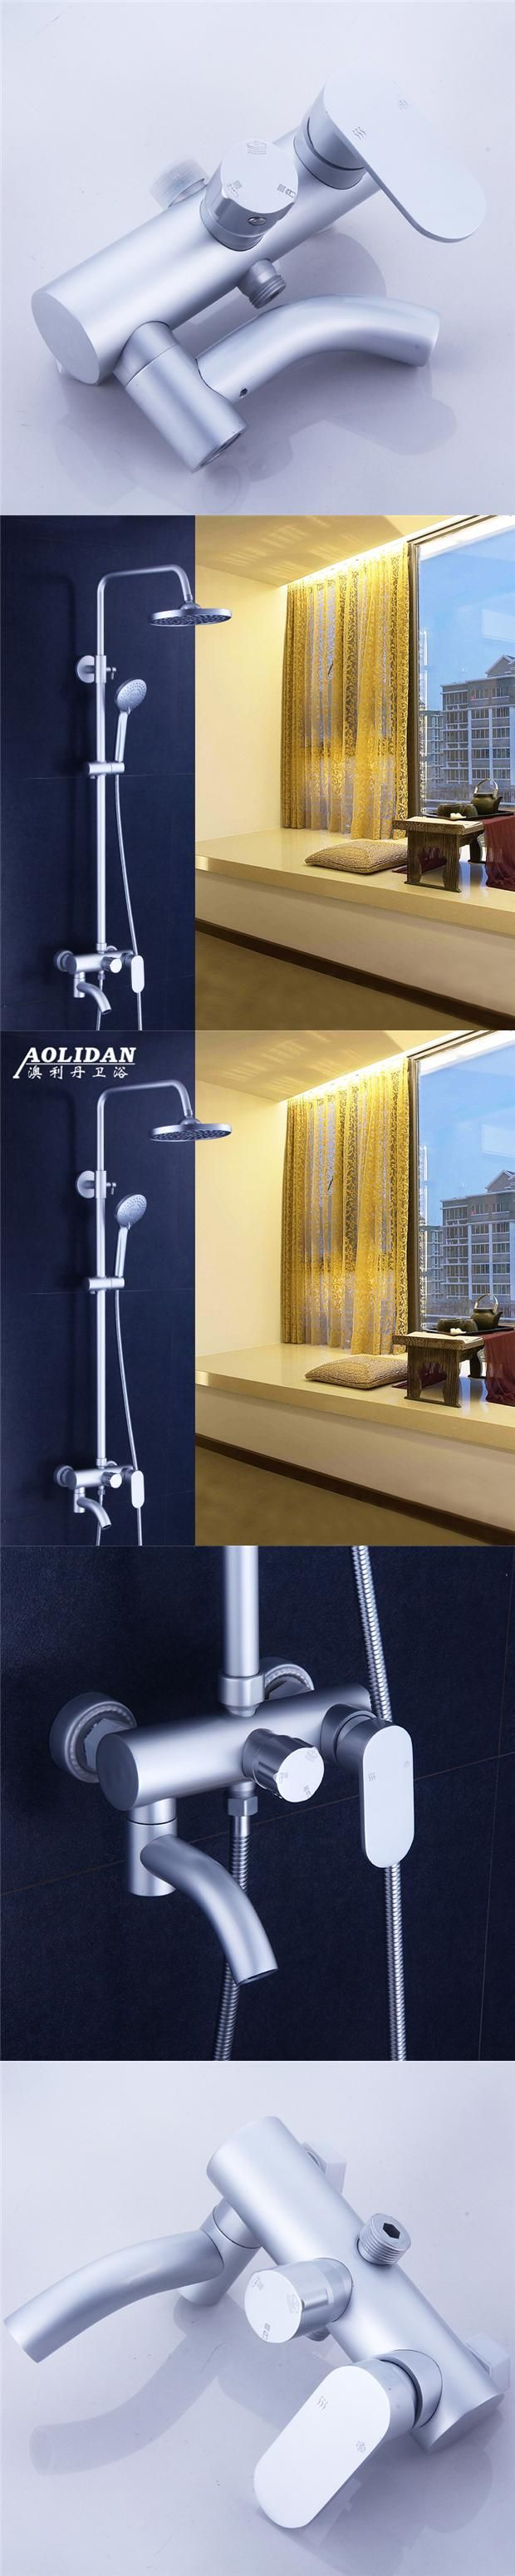 aluminum space suit bathroom shower cold and hot water valve set with the nozzle